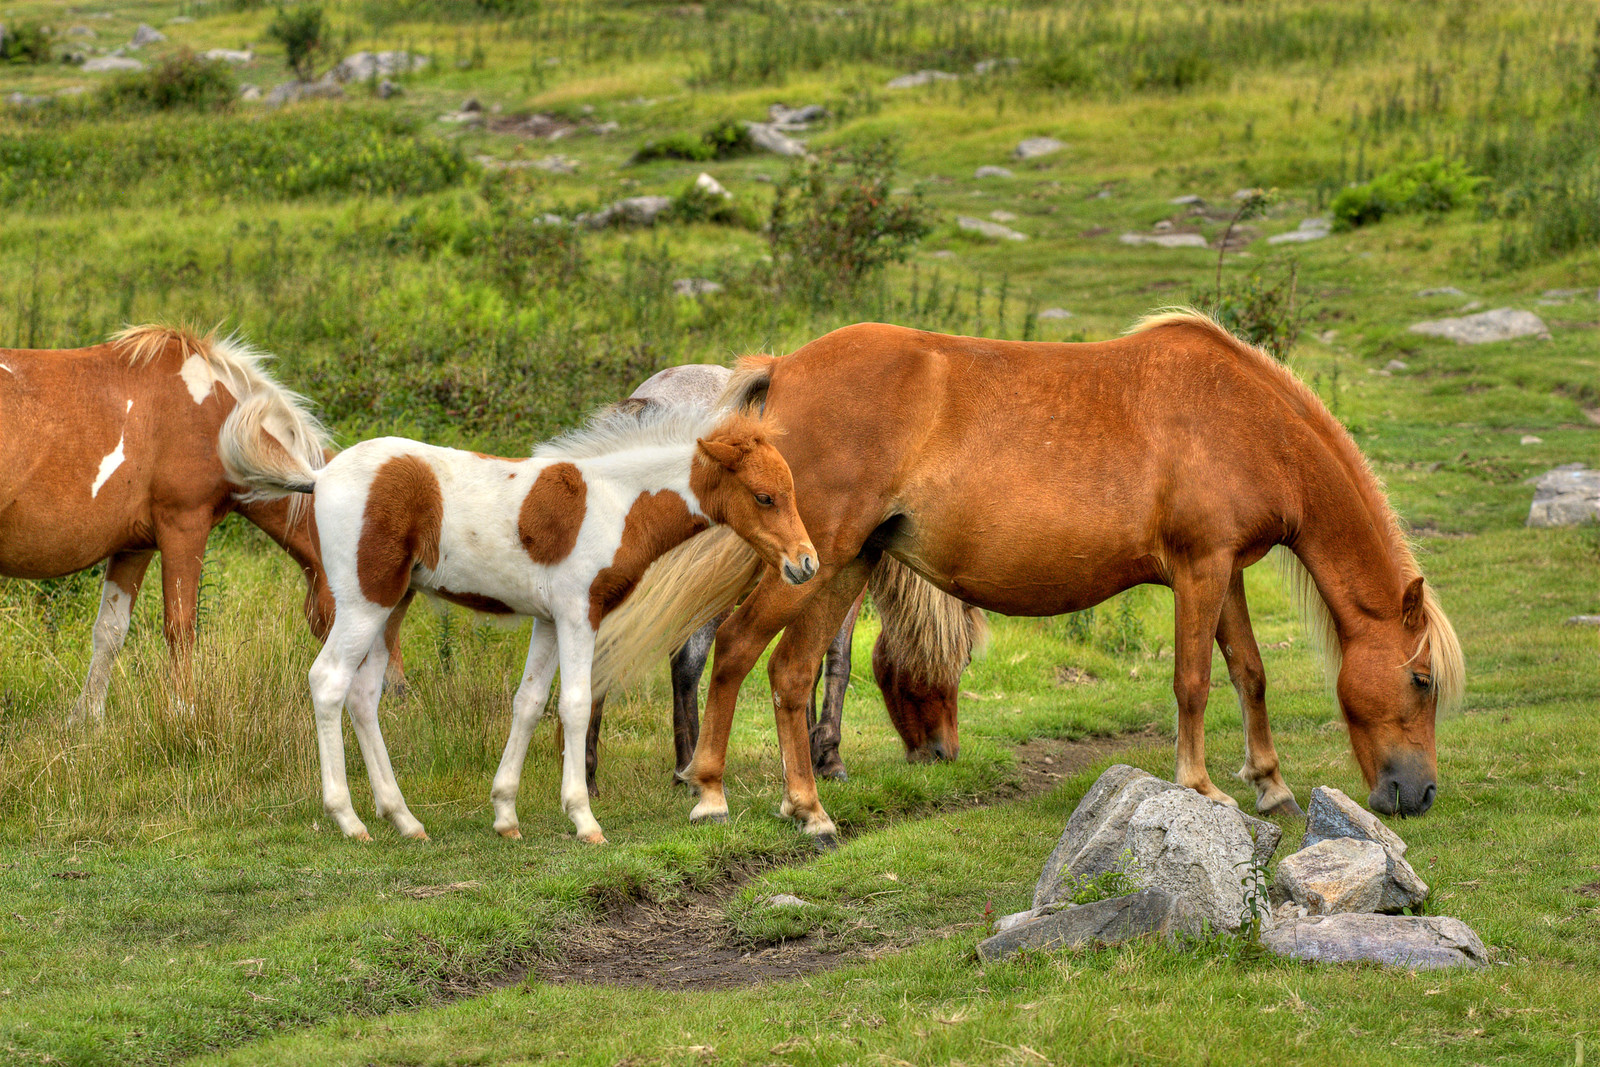 Wild ponies graze on Wilburn Ridge at Mile 493.1 on the Appalachian Trail in VA on Thursday, August 2, 2012. Copyright 2012 Jason Barnette